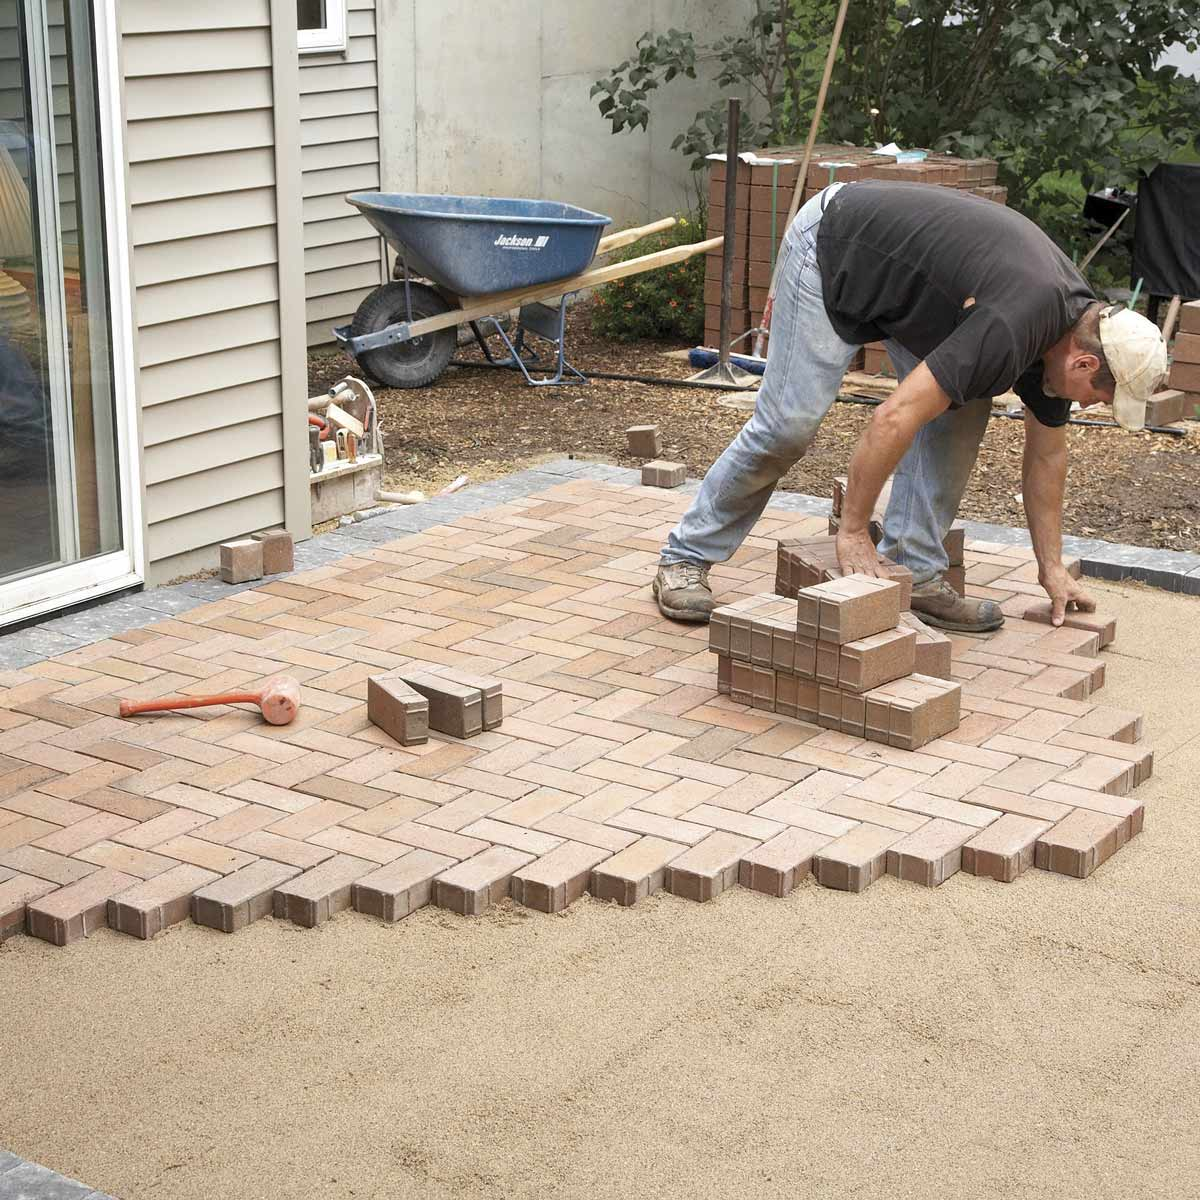 Pavers-Irving TX Landscape Designs & Outdoor Living Areas-We offer Landscape Design, Outdoor Patios & Pergolas, Outdoor Living Spaces, Stonescapes, Residential & Commercial Landscaping, Irrigation Installation & Repairs, Drainage Systems, Landscape Lighting, Outdoor Living Spaces, Tree Service, Lawn Service, and more.